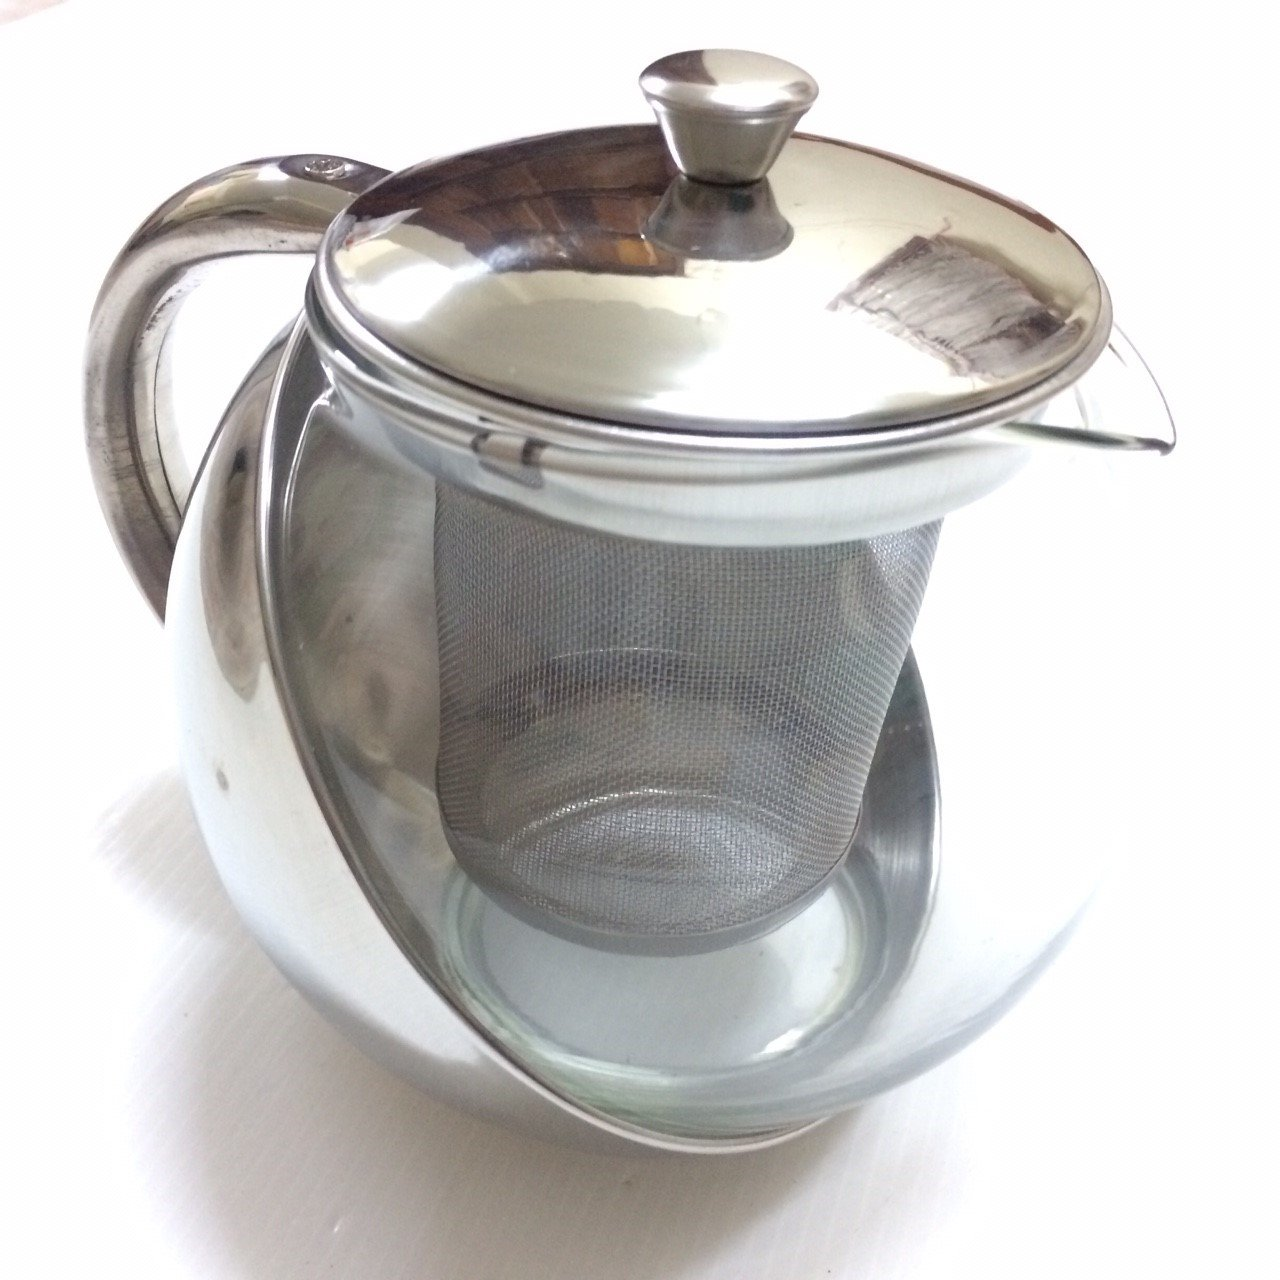 Half-Moon Teapot and Tea Strainer Set & Lid Teapot Kettle Kitchen Dining 25.36 oz. by Pisana1979 (Image #1)